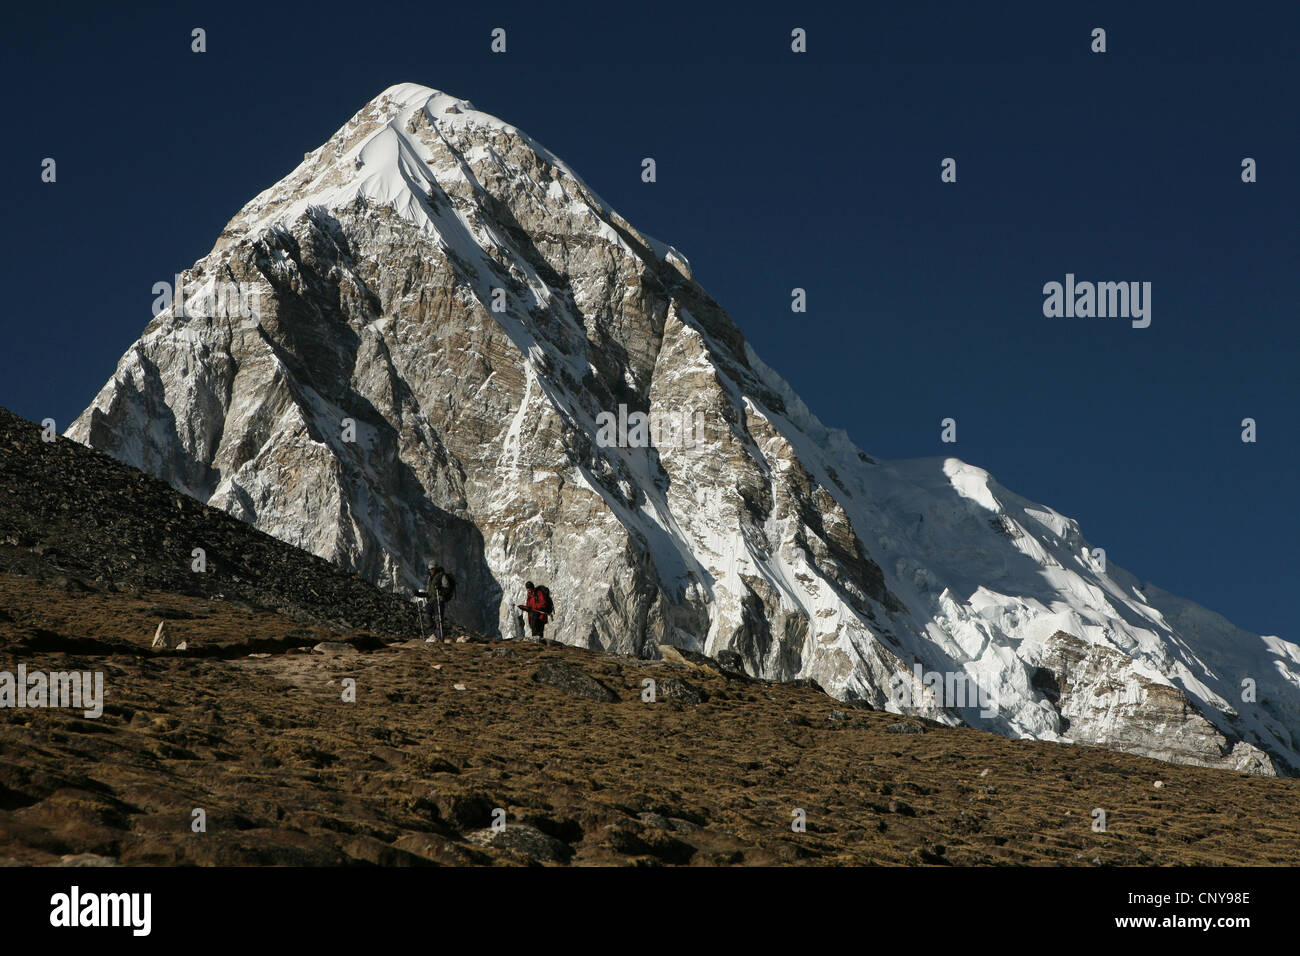 Mount Pumori (7,161 m) in Khumbu region in the Himalayas, Nepal. - Stock Image